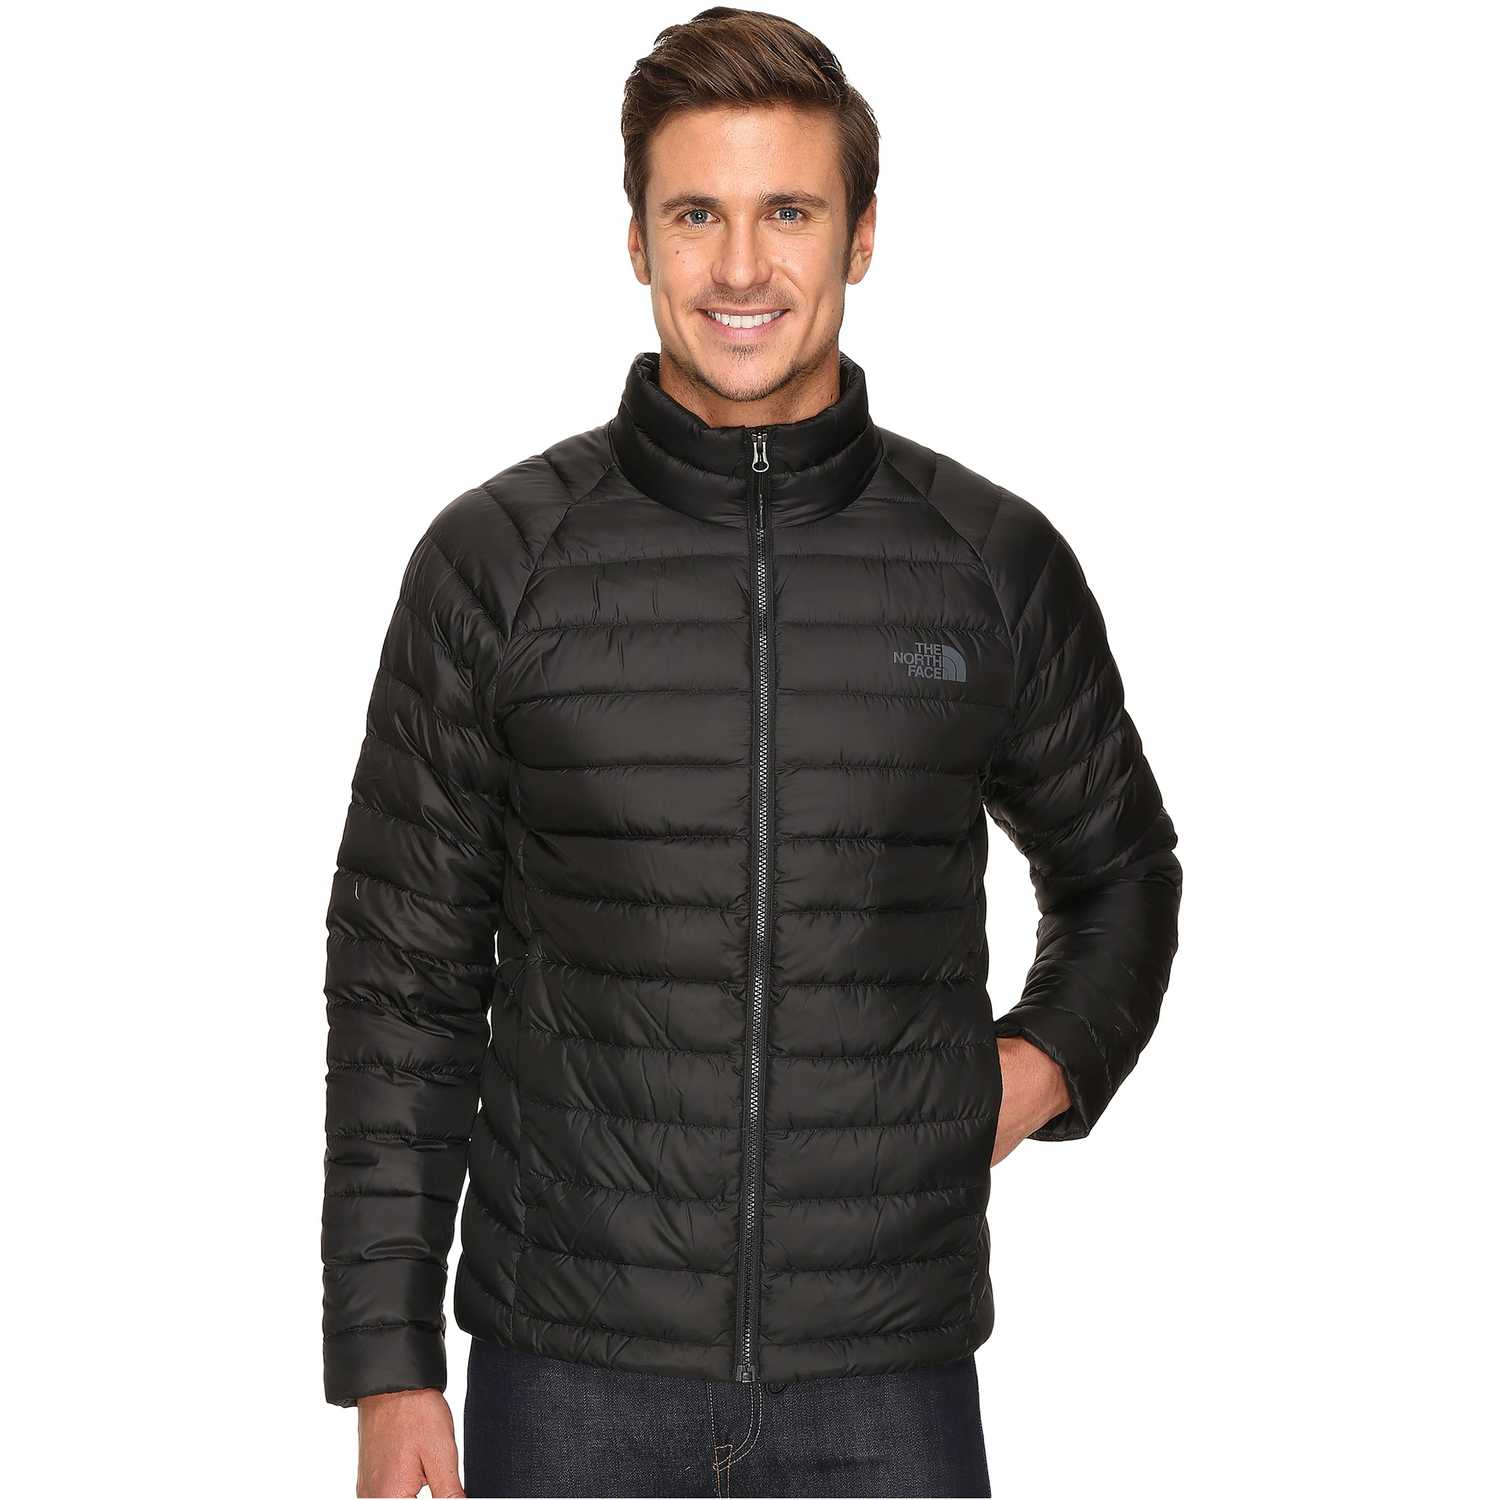 c1b6c7b5da3d6 Casaca de Hombre The North Face Negro m trevail jacket